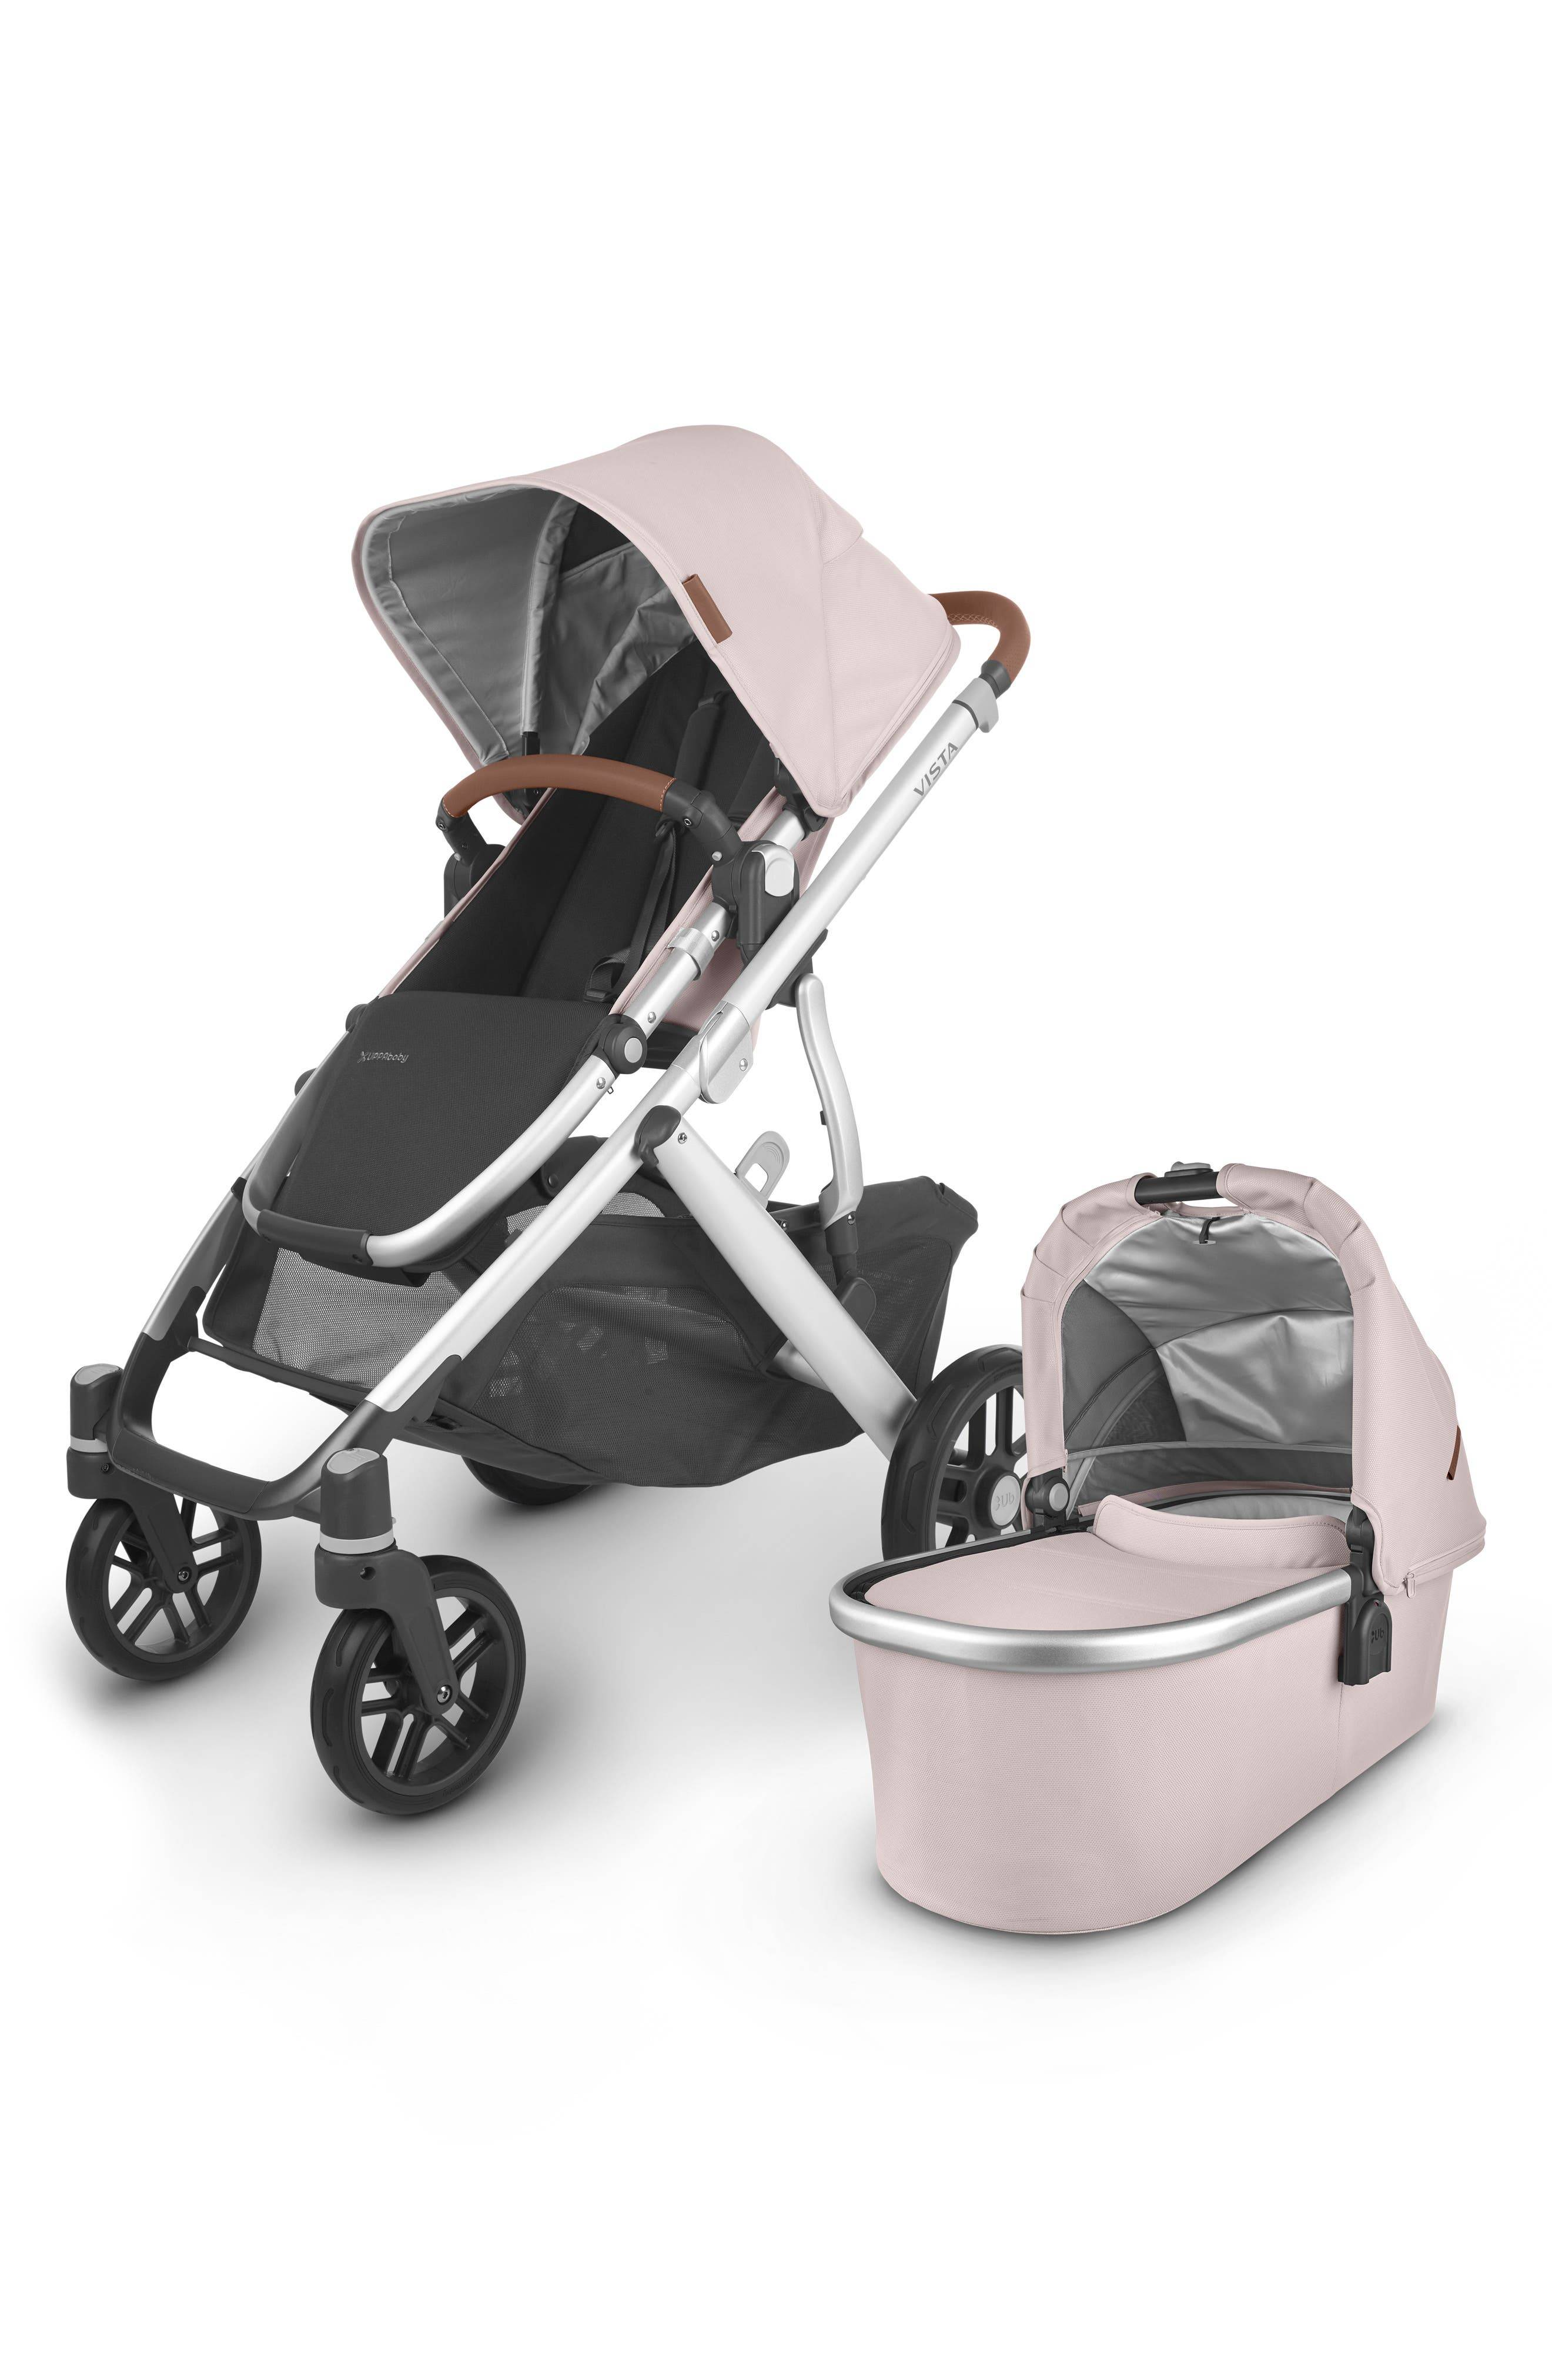 UPPAbaby Infant Uppababy Vista V2 Stroller With Bassinet, Size One Size - Pink